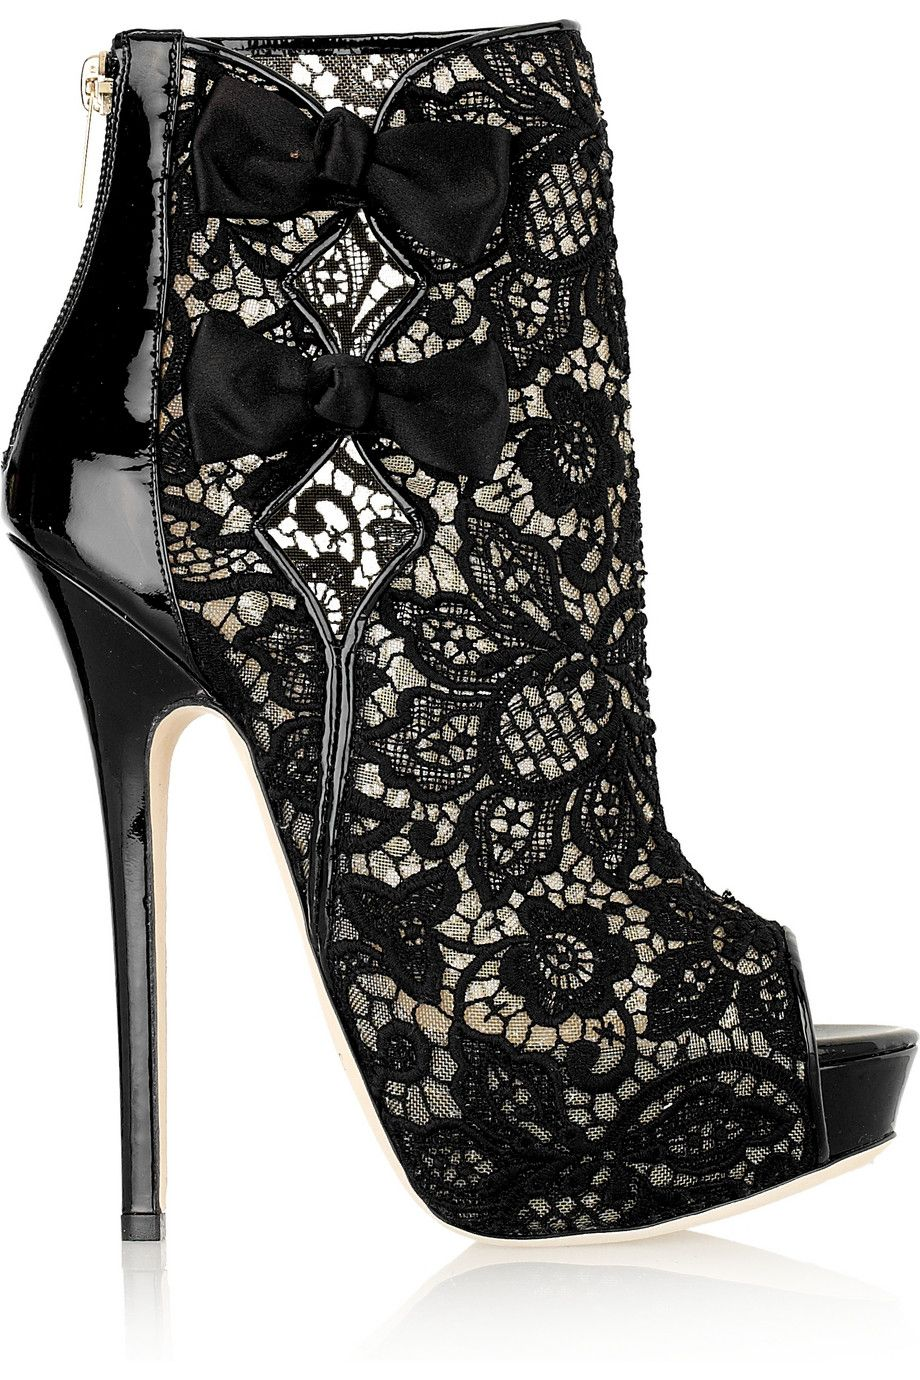 927205130bb4 Jimmy Choo Yeah OMG or GMO ( great massive orgasm ) gorgeous shoes love  them just wish i could afford them xx